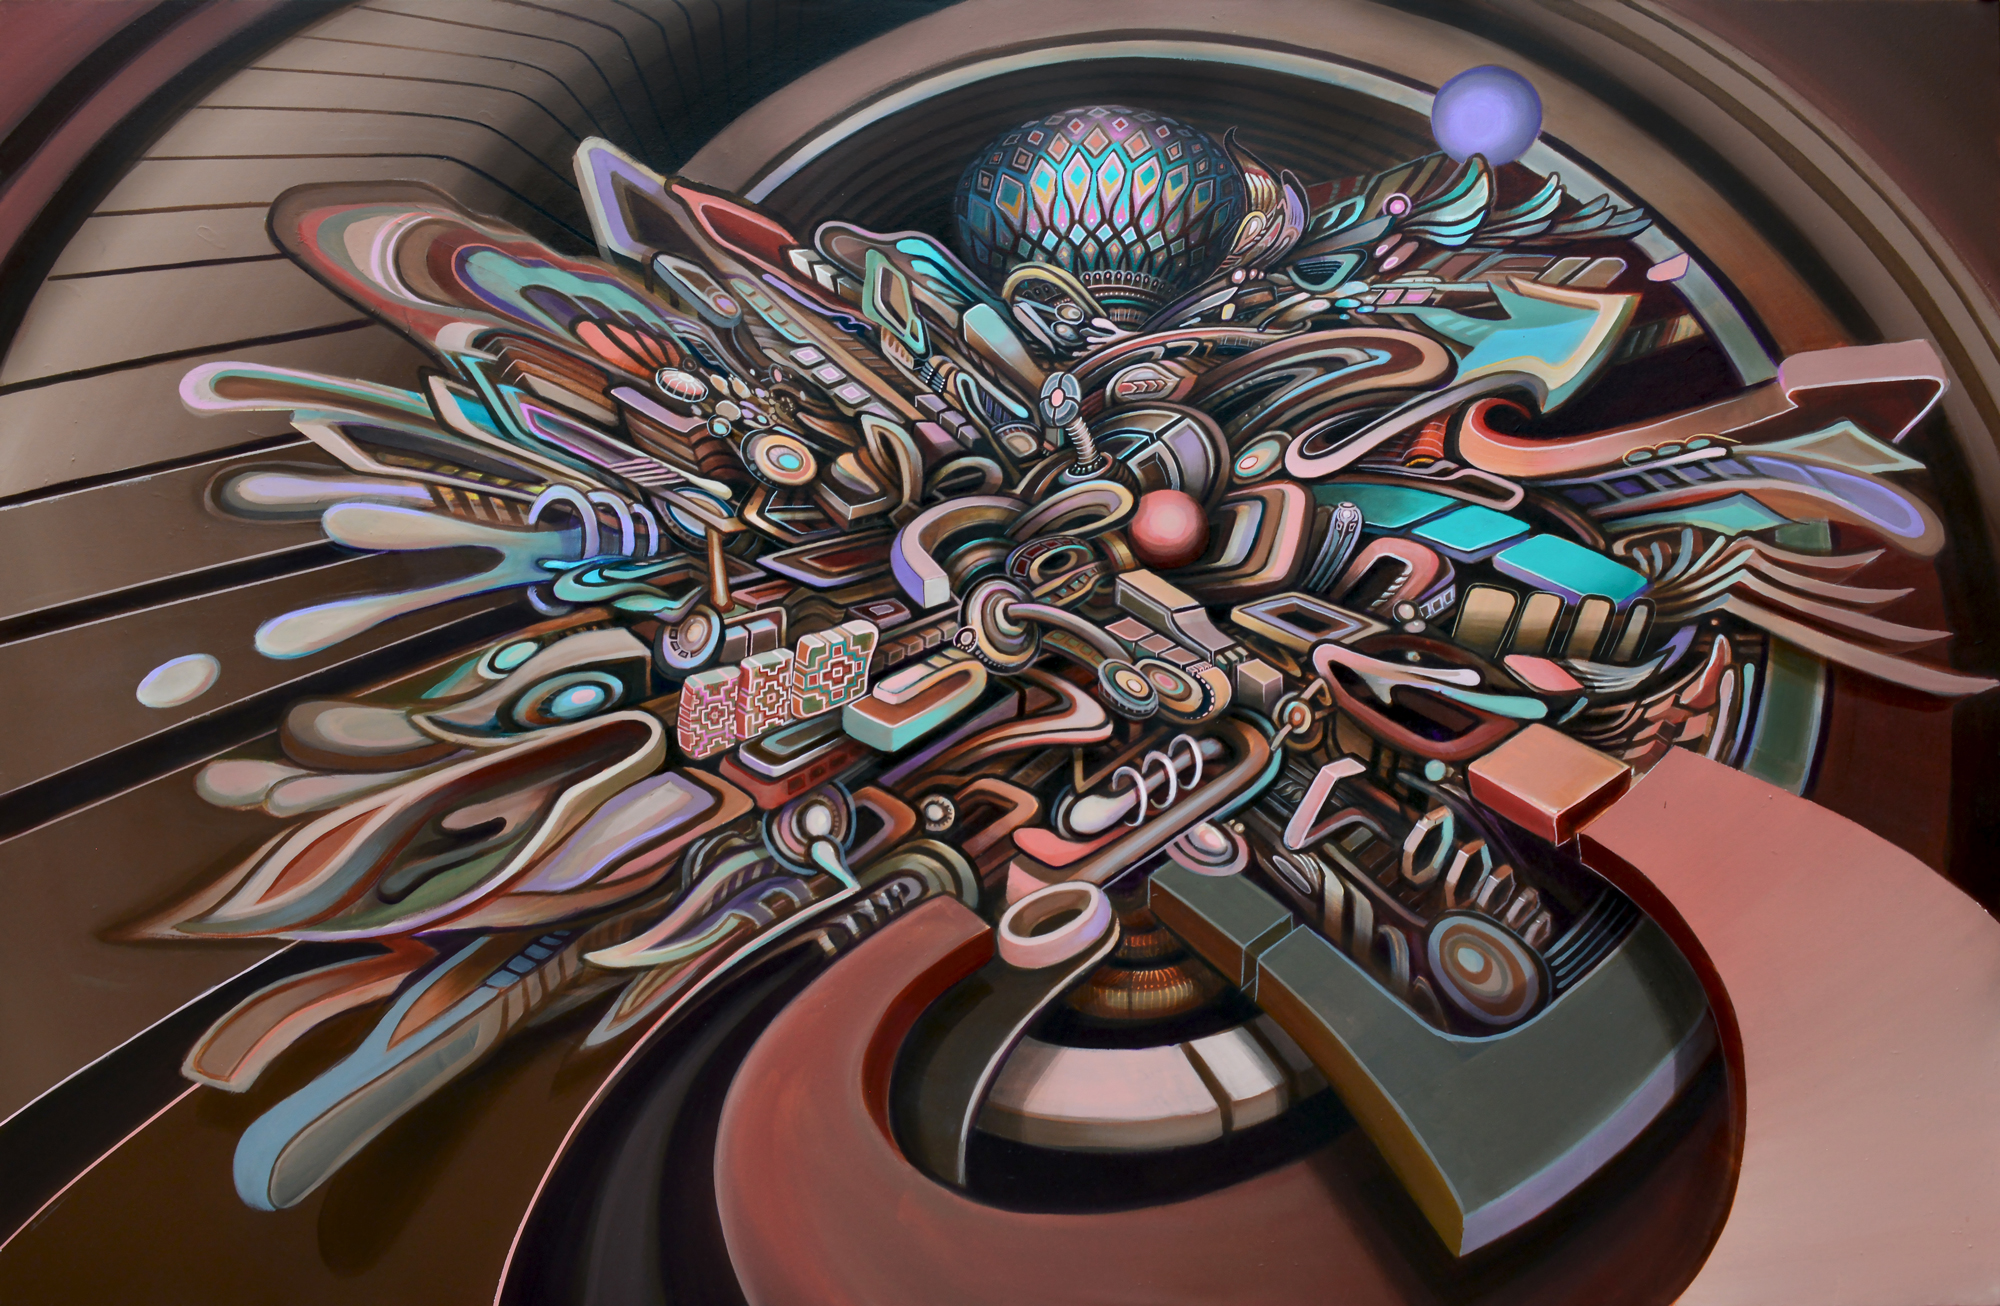 'Epicenter' by Stephen Kruse, Jake Amason